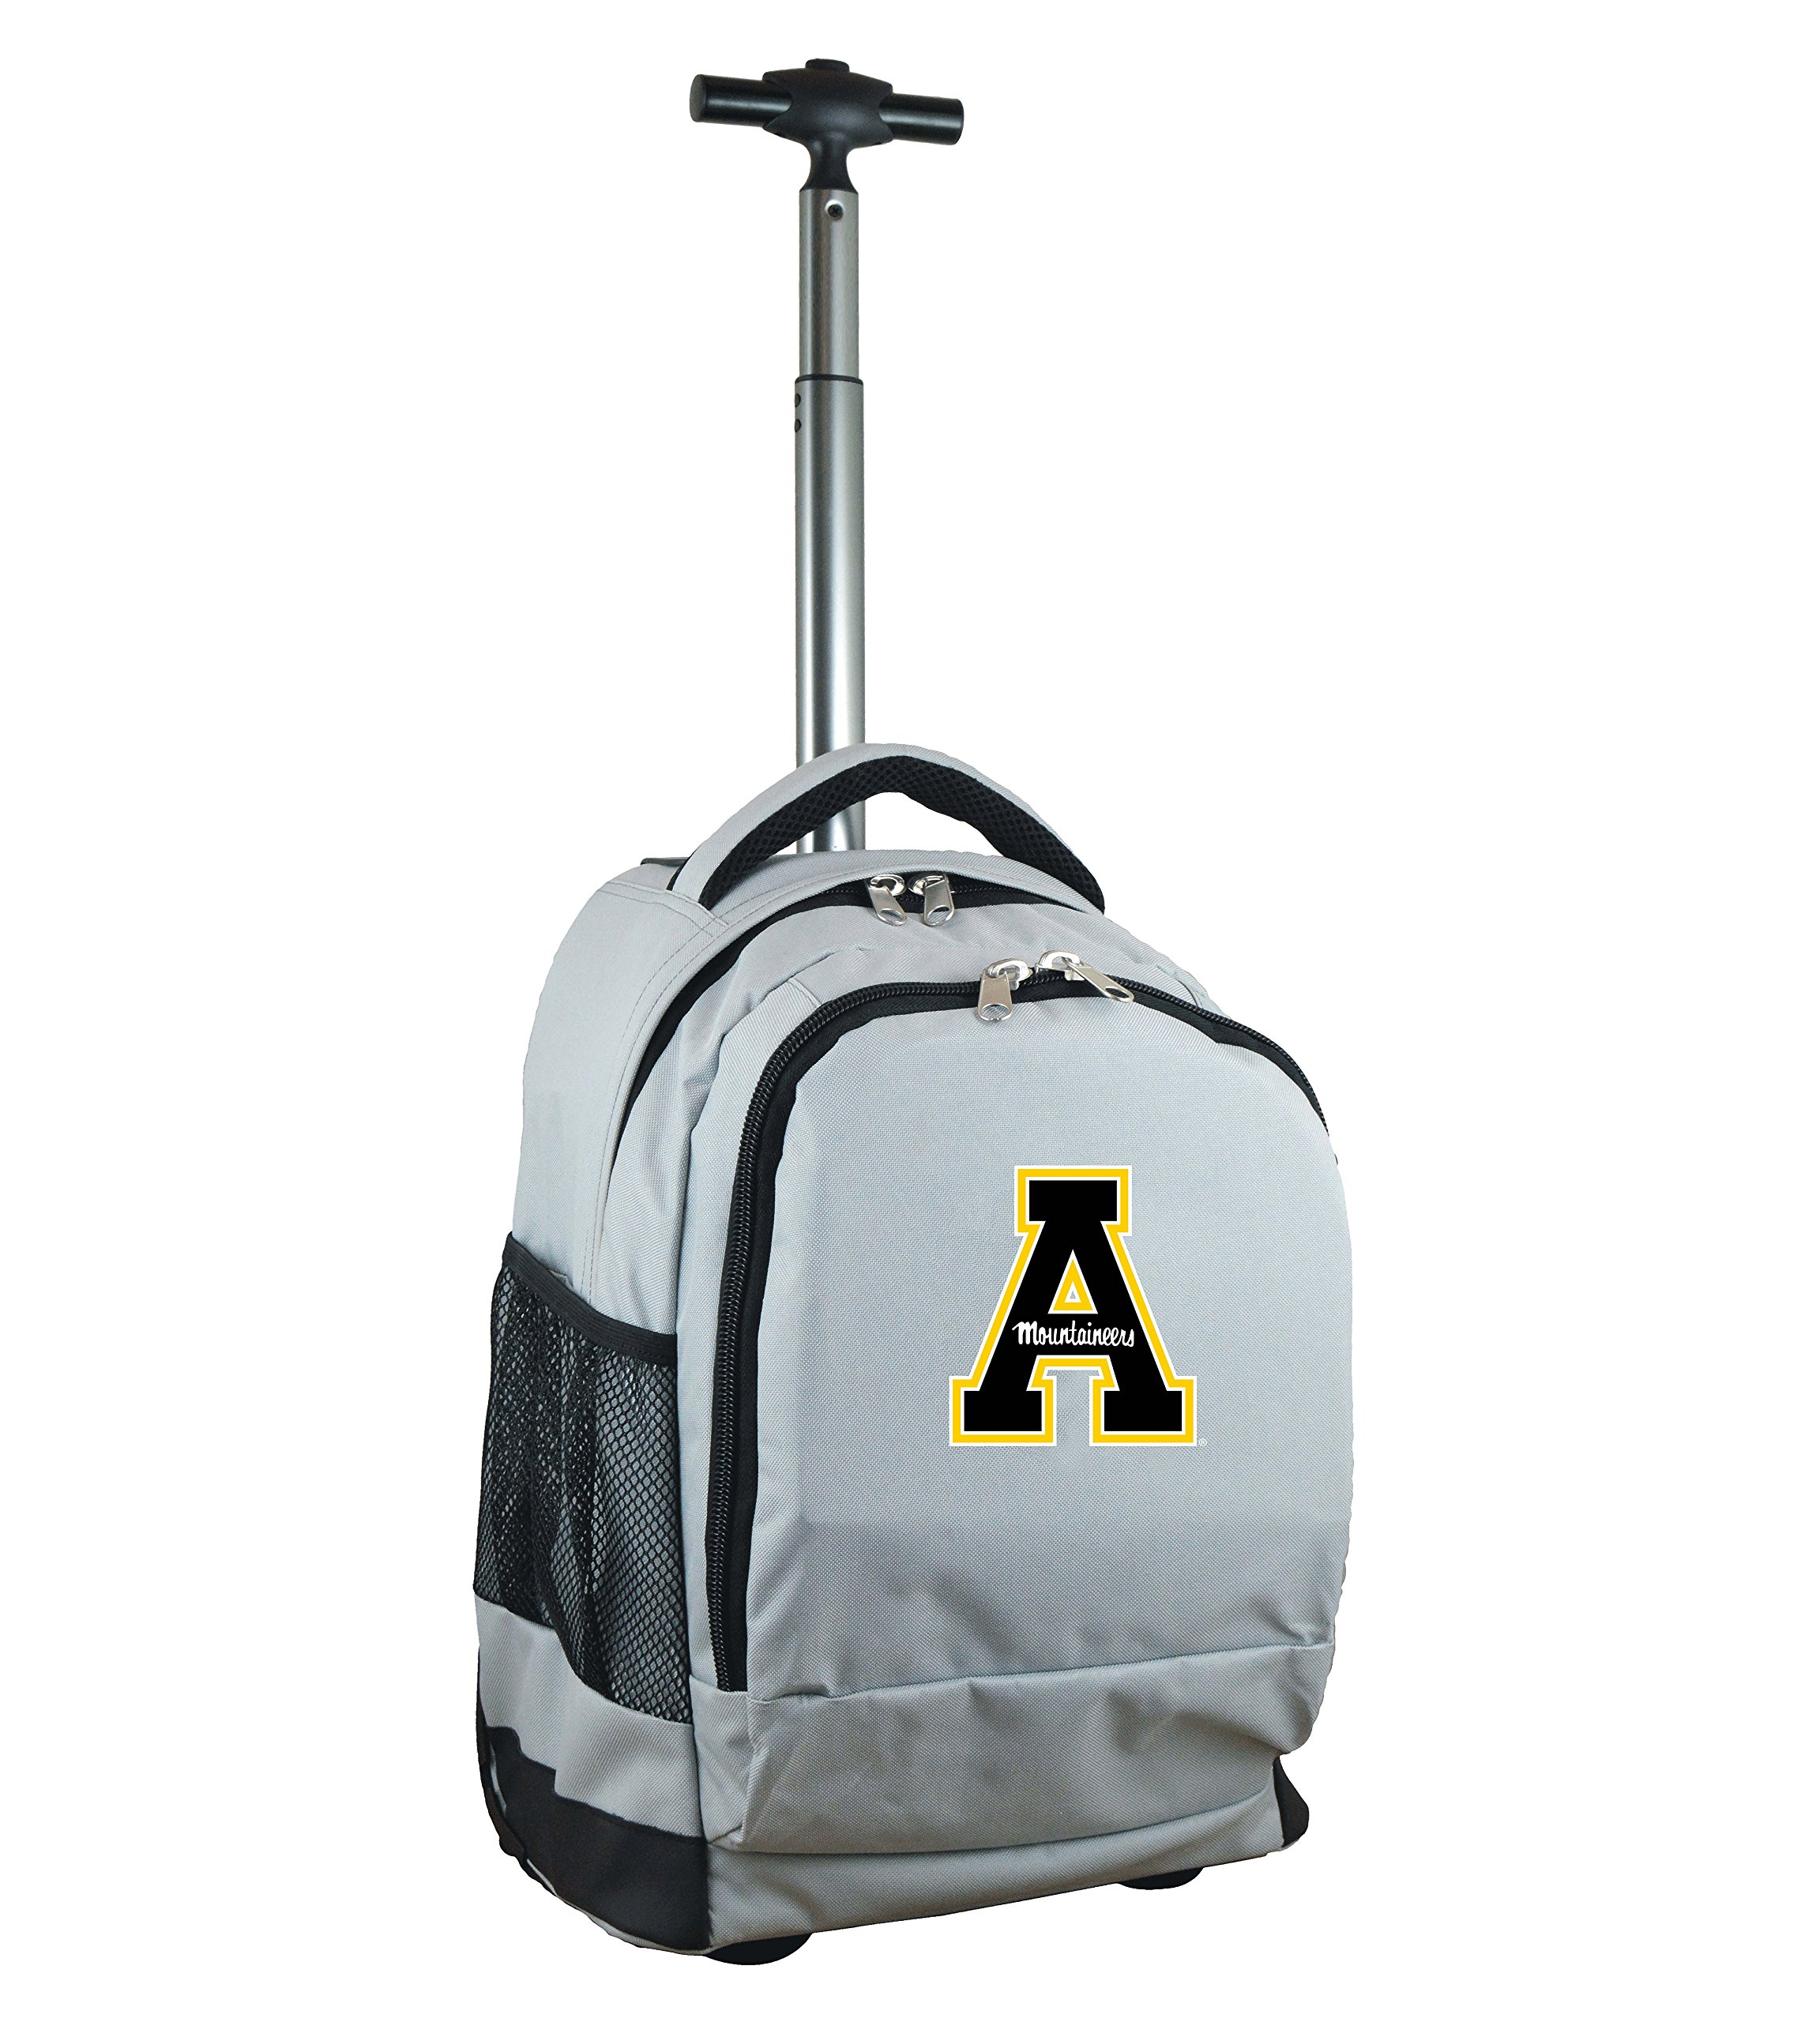 Denco NCAA Appalachian State Mountaineers Expedition Wheeled Backpack, 19-inches, Grey by Denco (Image #1)